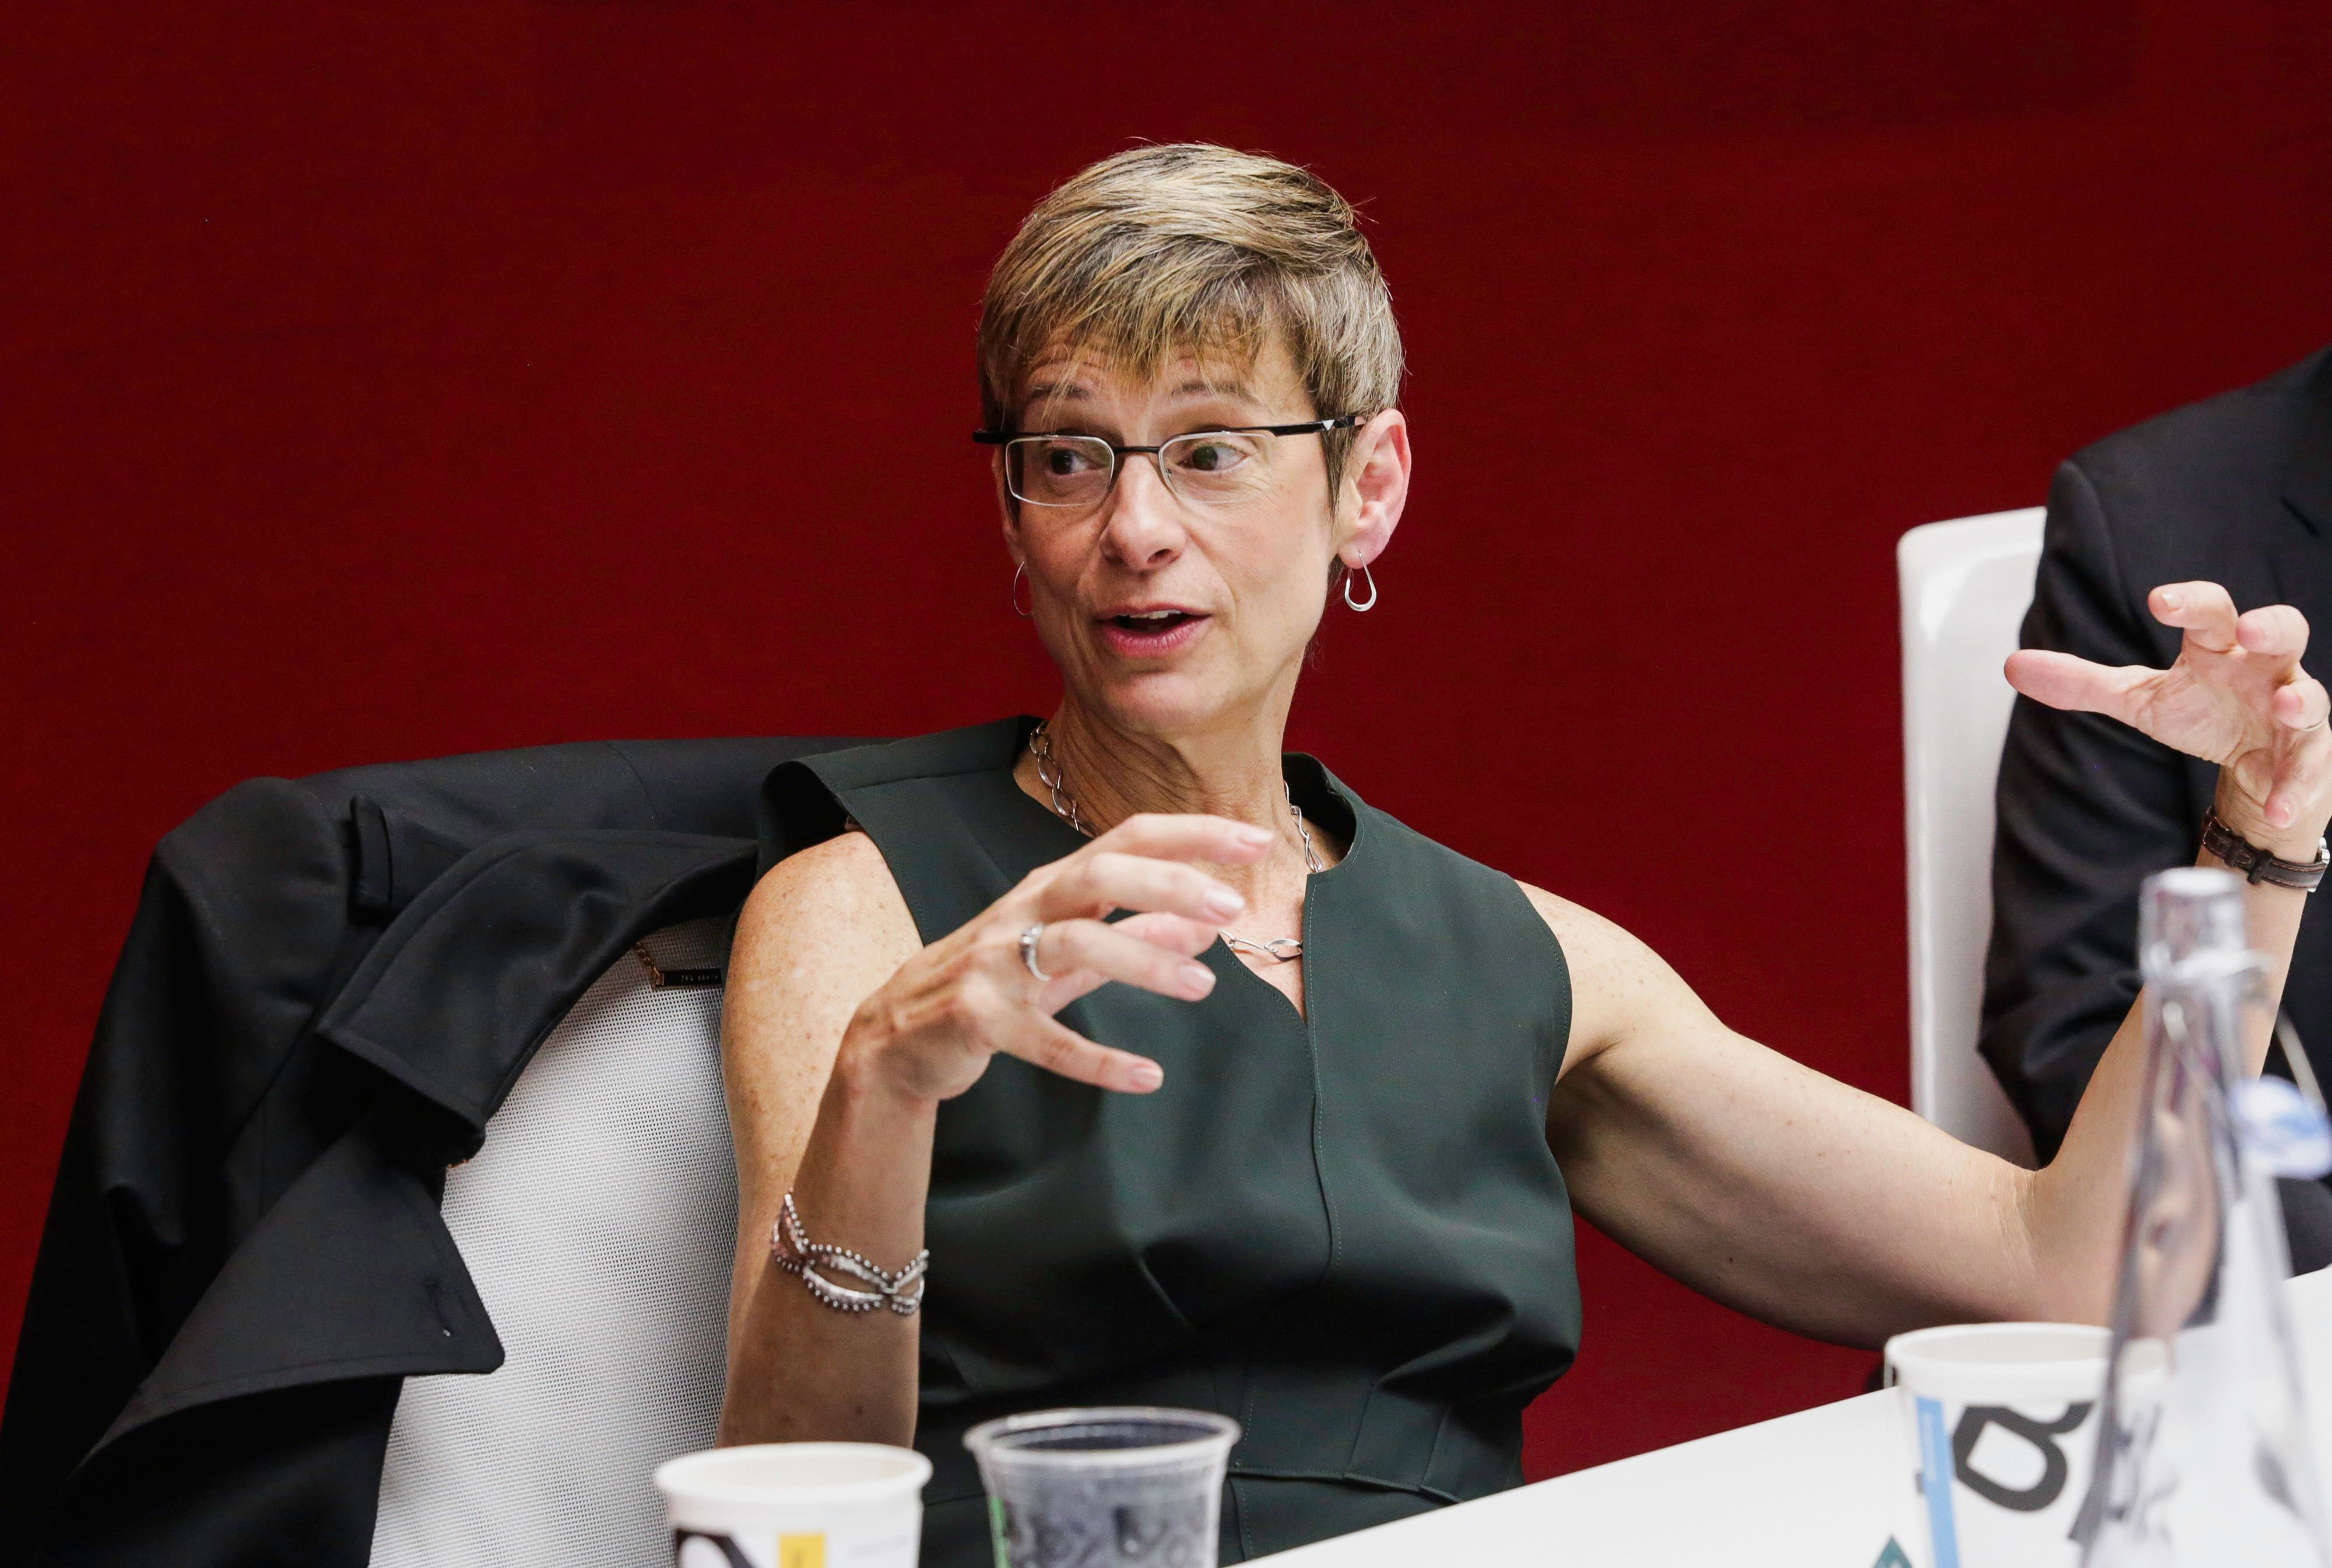 Cornell University President Elizabeth Garrett wants students to get a full night of sleep and take breaks from their ce